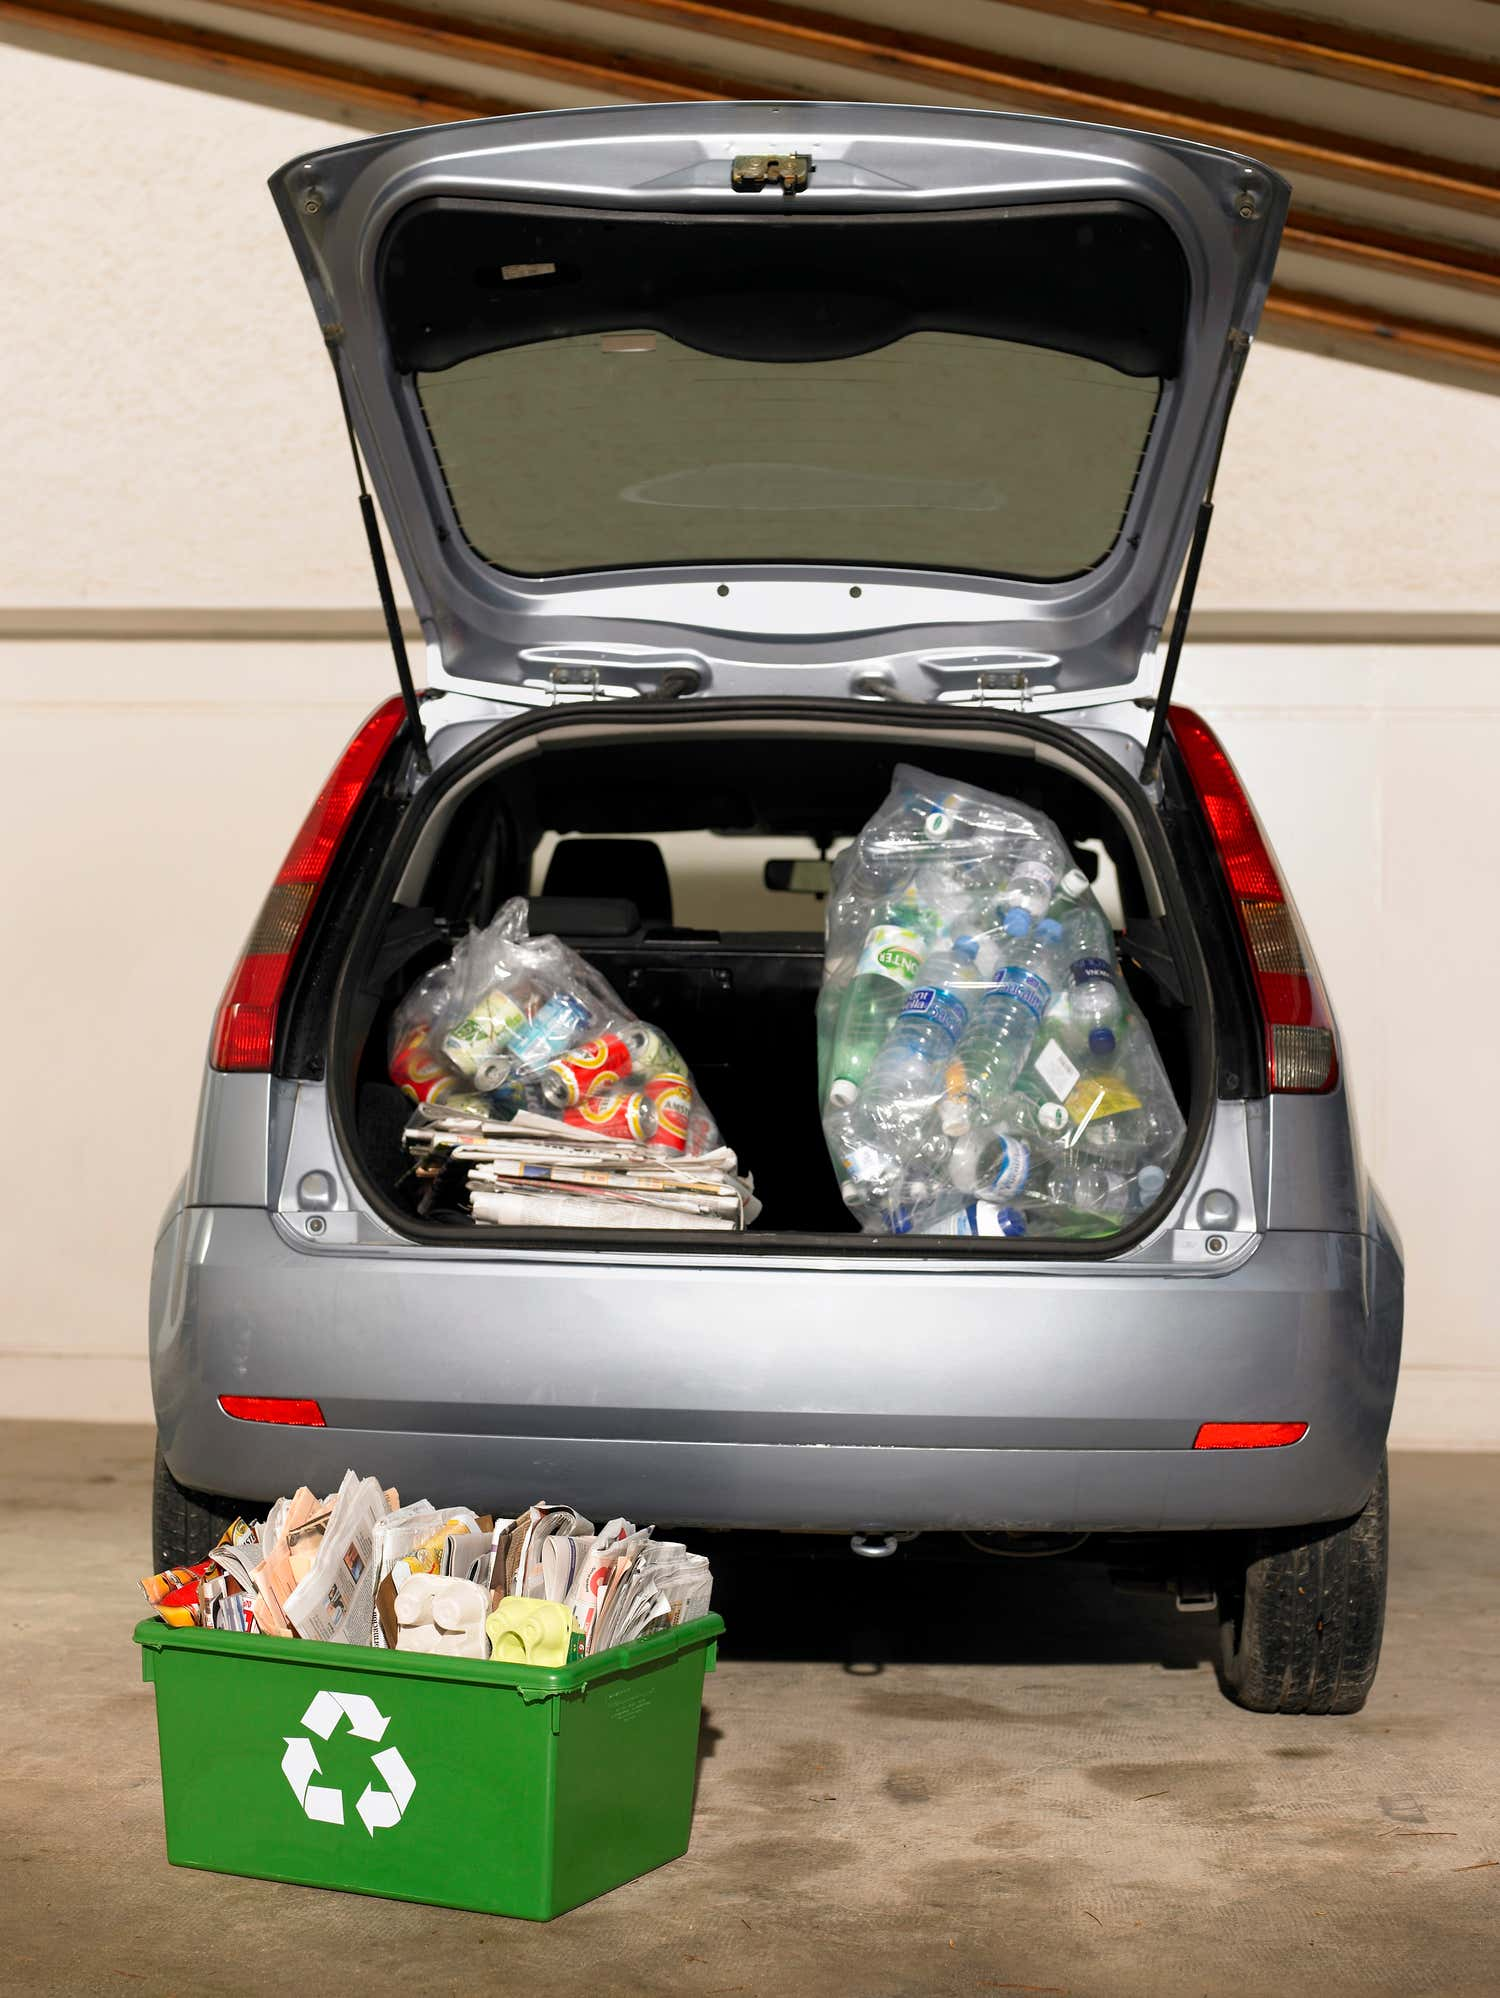 Car trunk open with recycling in it